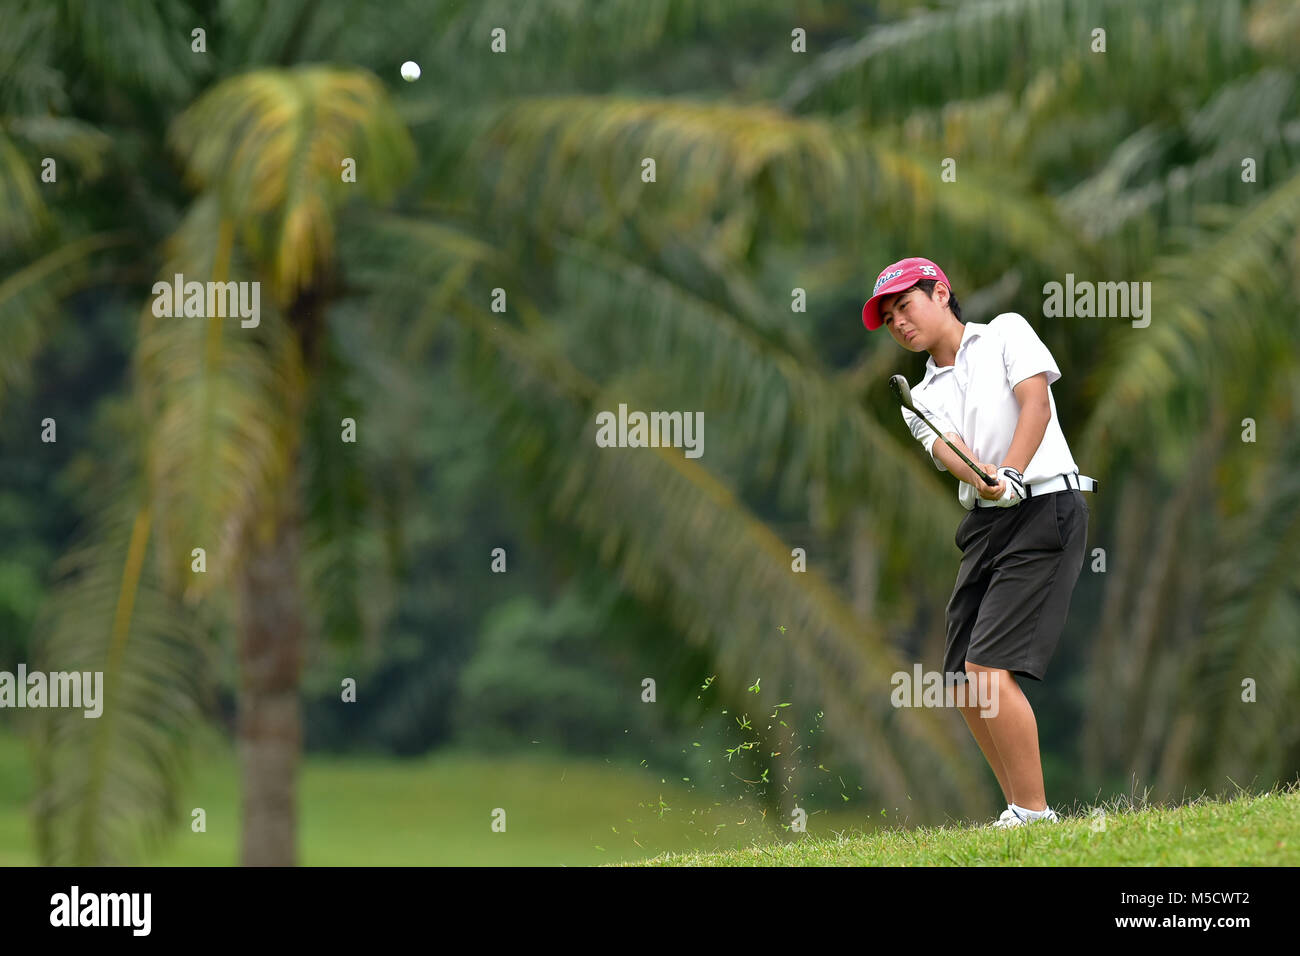 Danau, UKM Bangi - FEBRUARY 10: Jake Foley plays his shot  on the 6th hole during Round One of the Danau Junior - Stock Image